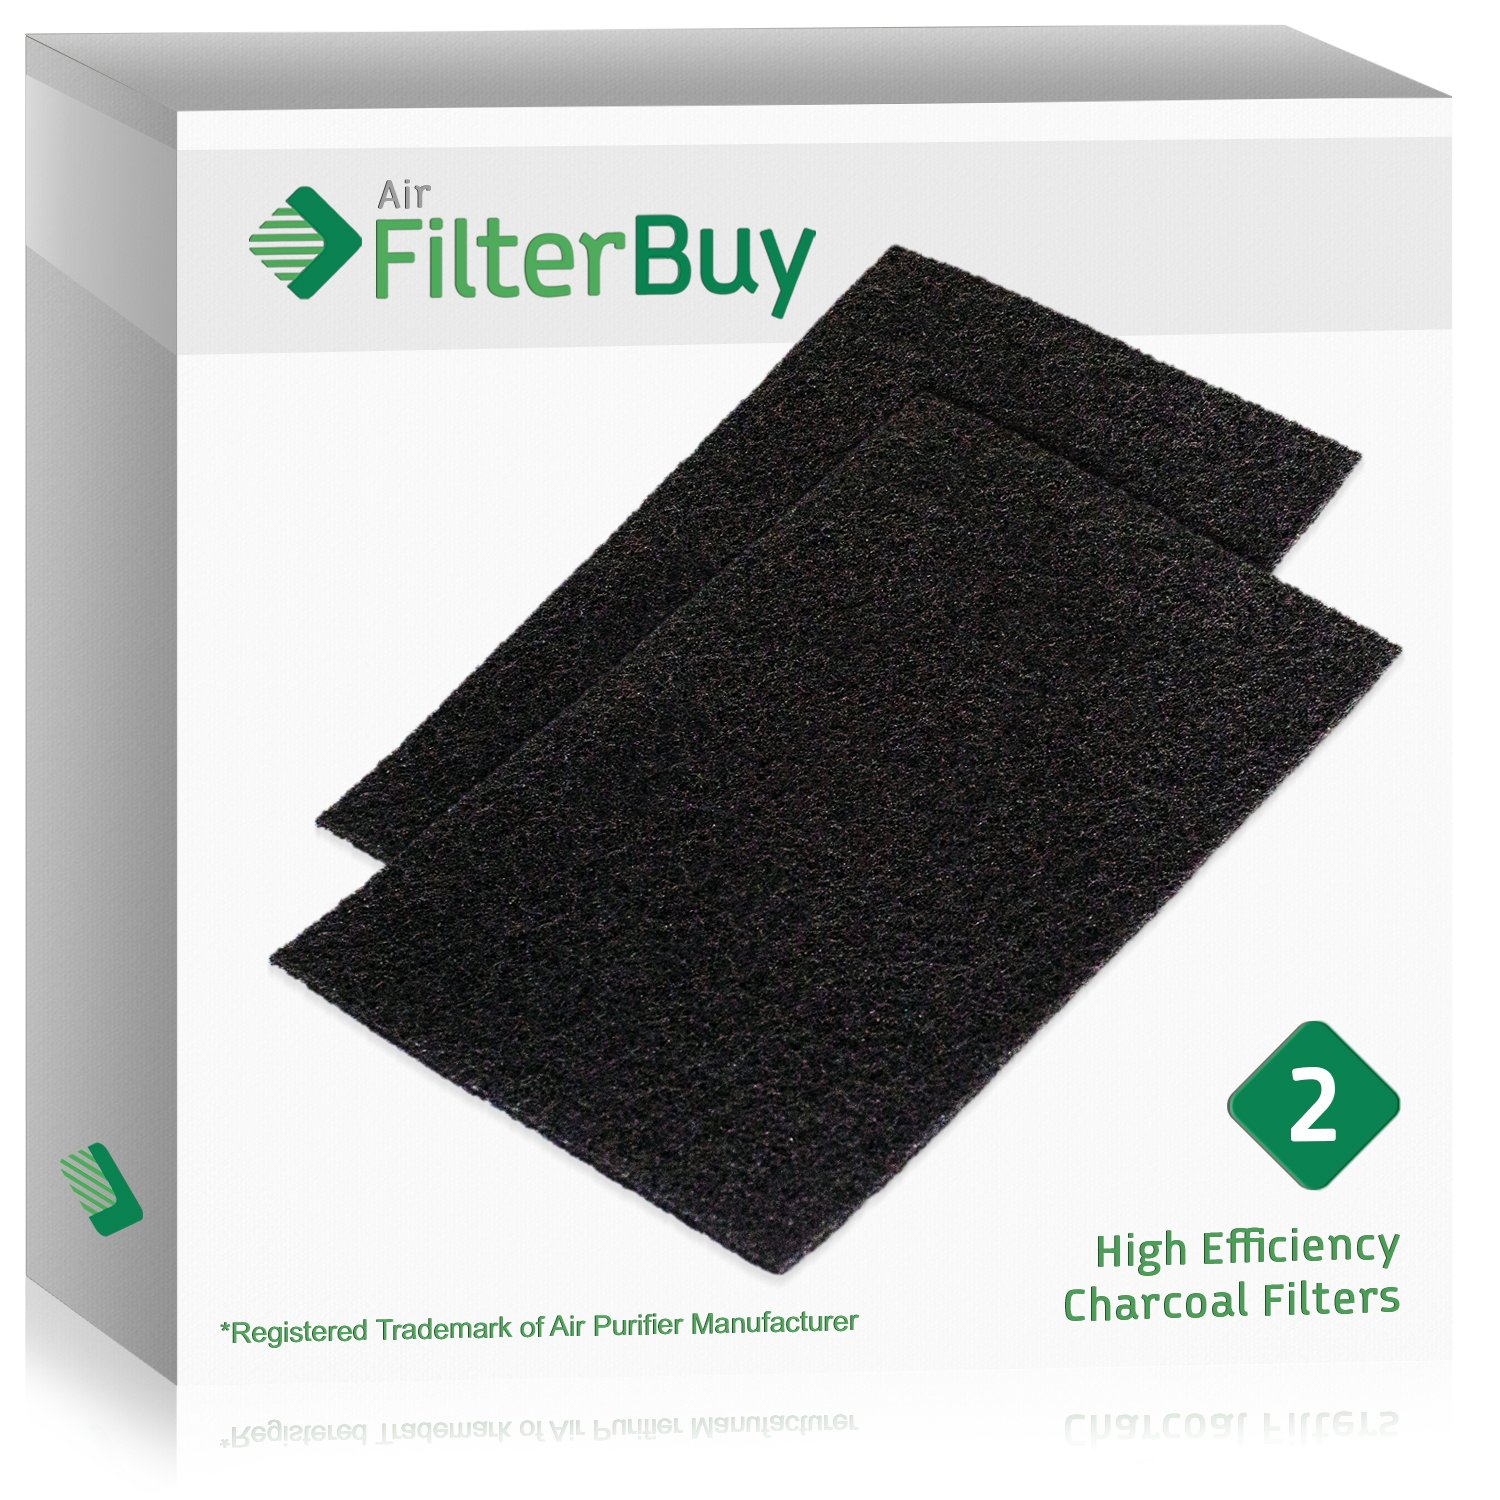 2 - FilterBuy Holmes HAPF60 (HPF600) Replacement Carbon Pre Filters, Filter C. Designed by FilterBuy to fit Holmes Harmony Air Purifiers.